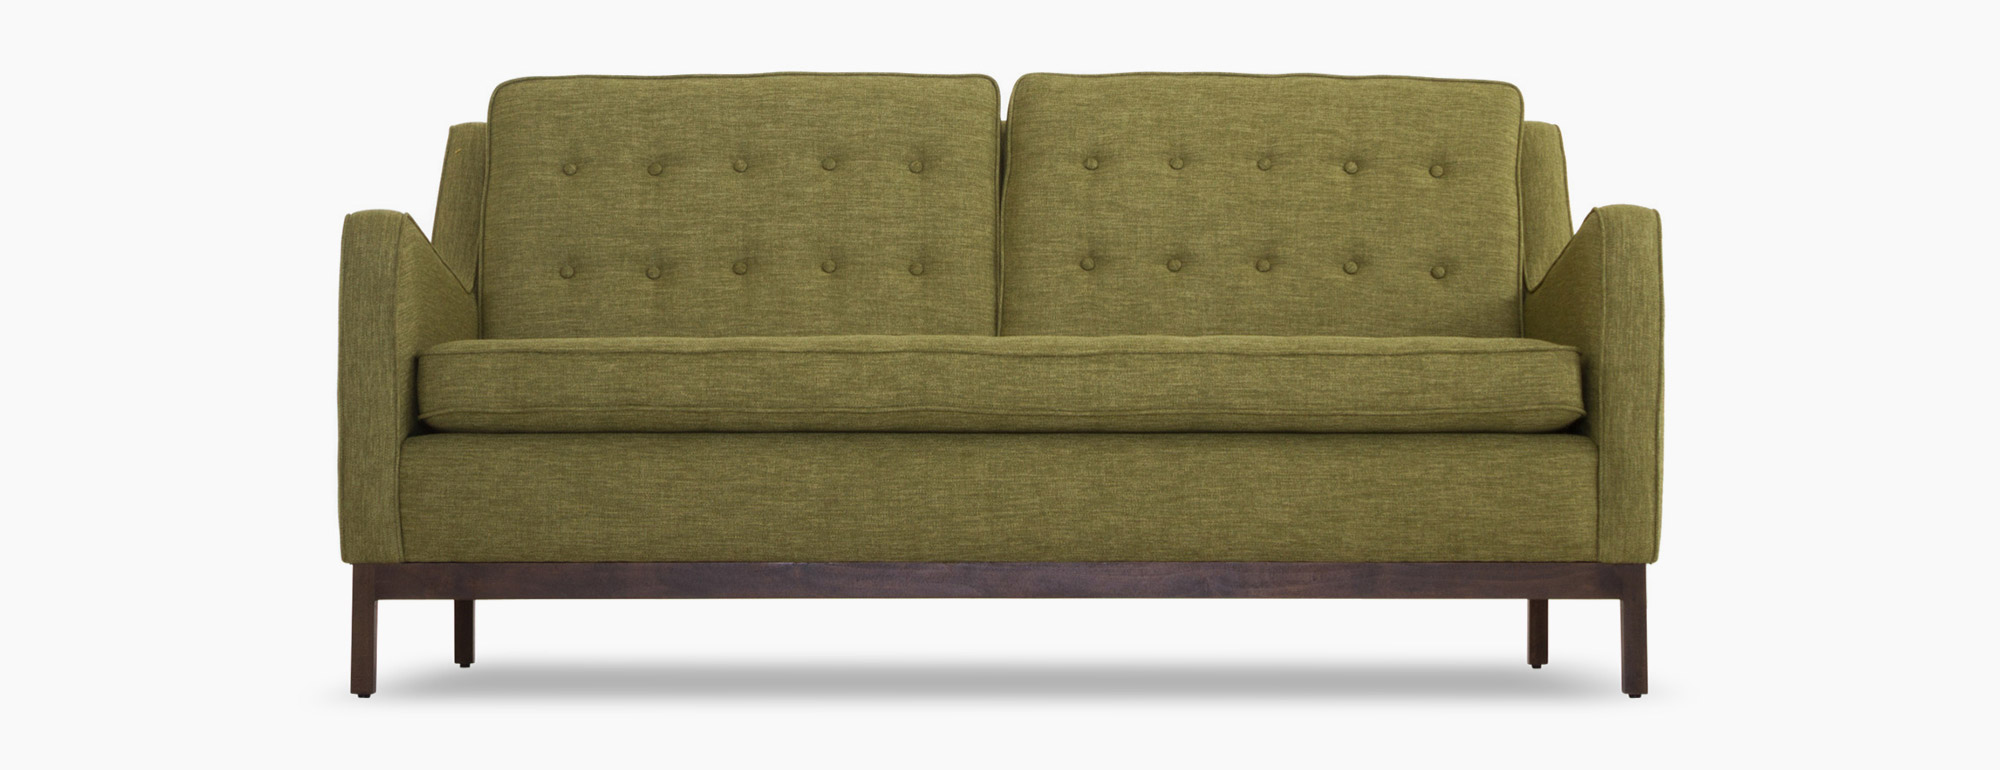 hero-redmon-loveseat-1